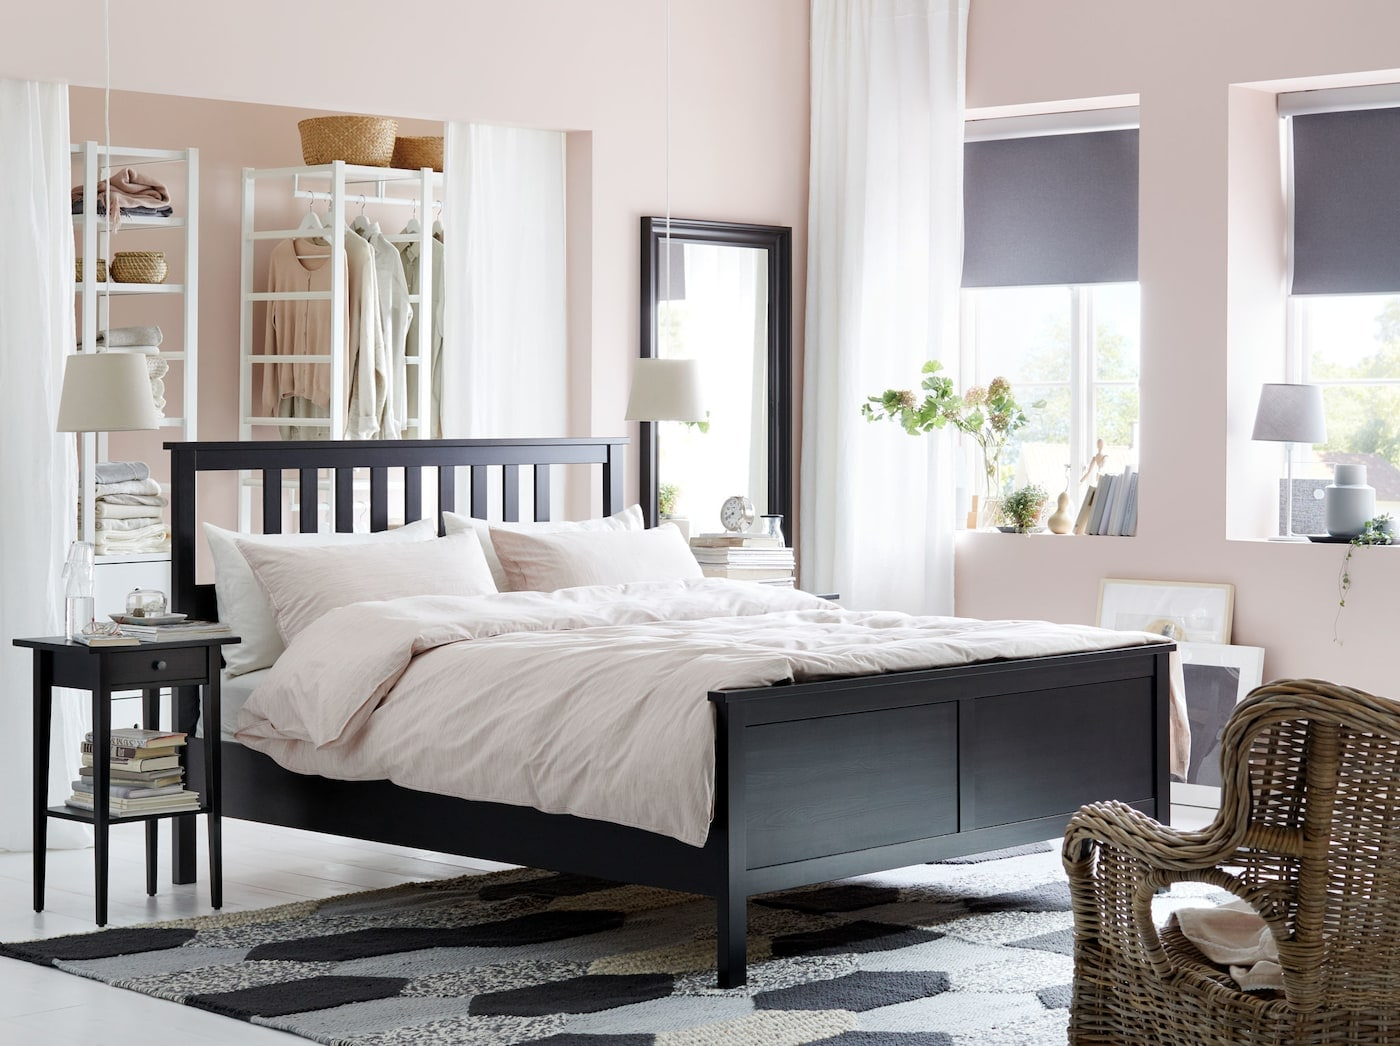 A stylish bedroom from all angles : gallery ikea bedroom - amorenlinea.org